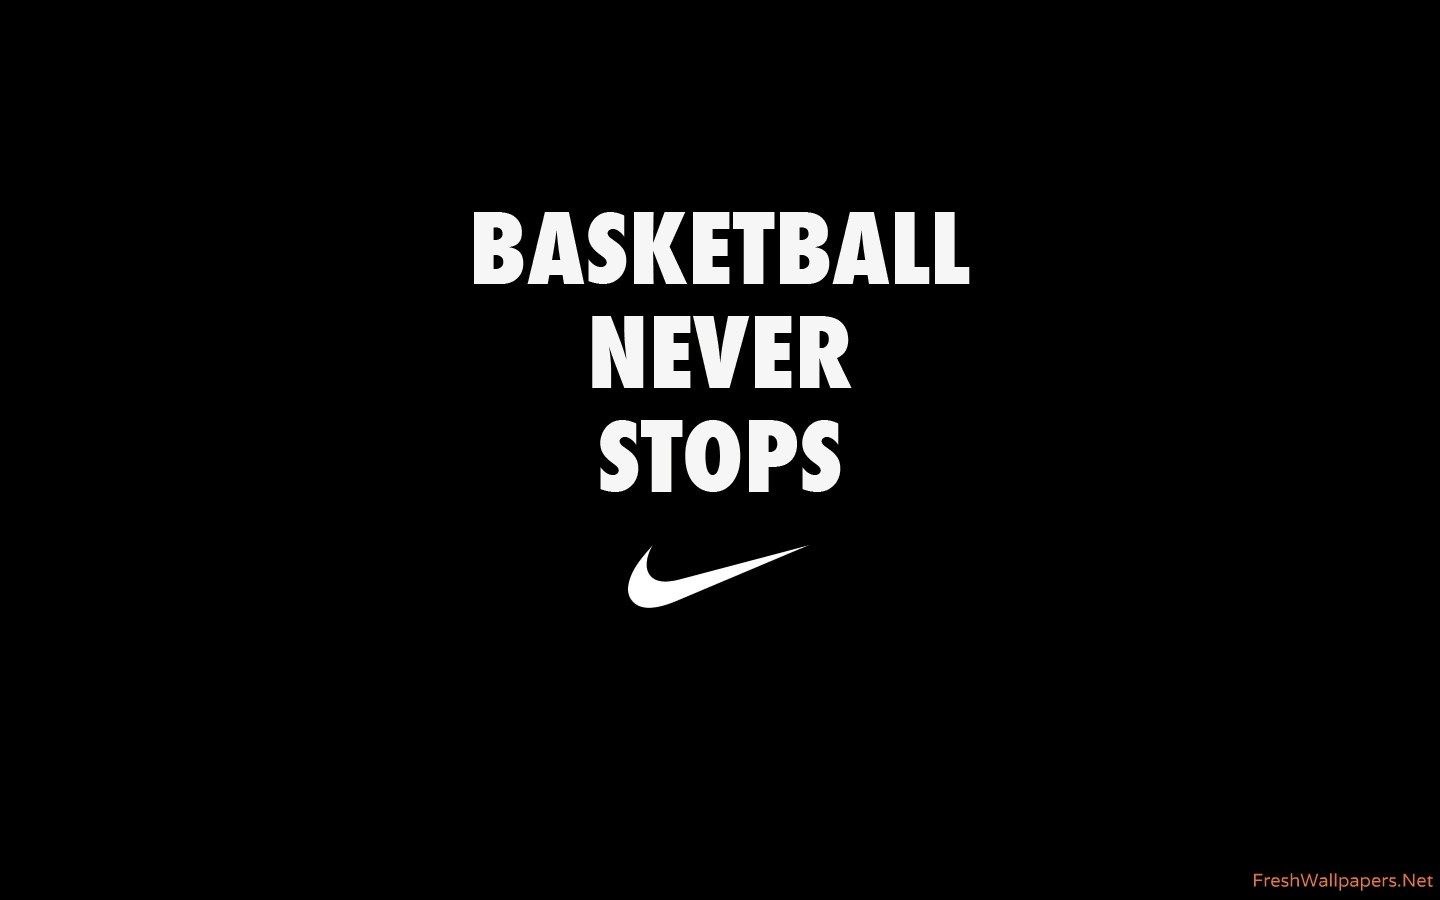 basketball never stops wallpapers | freshwallpapers